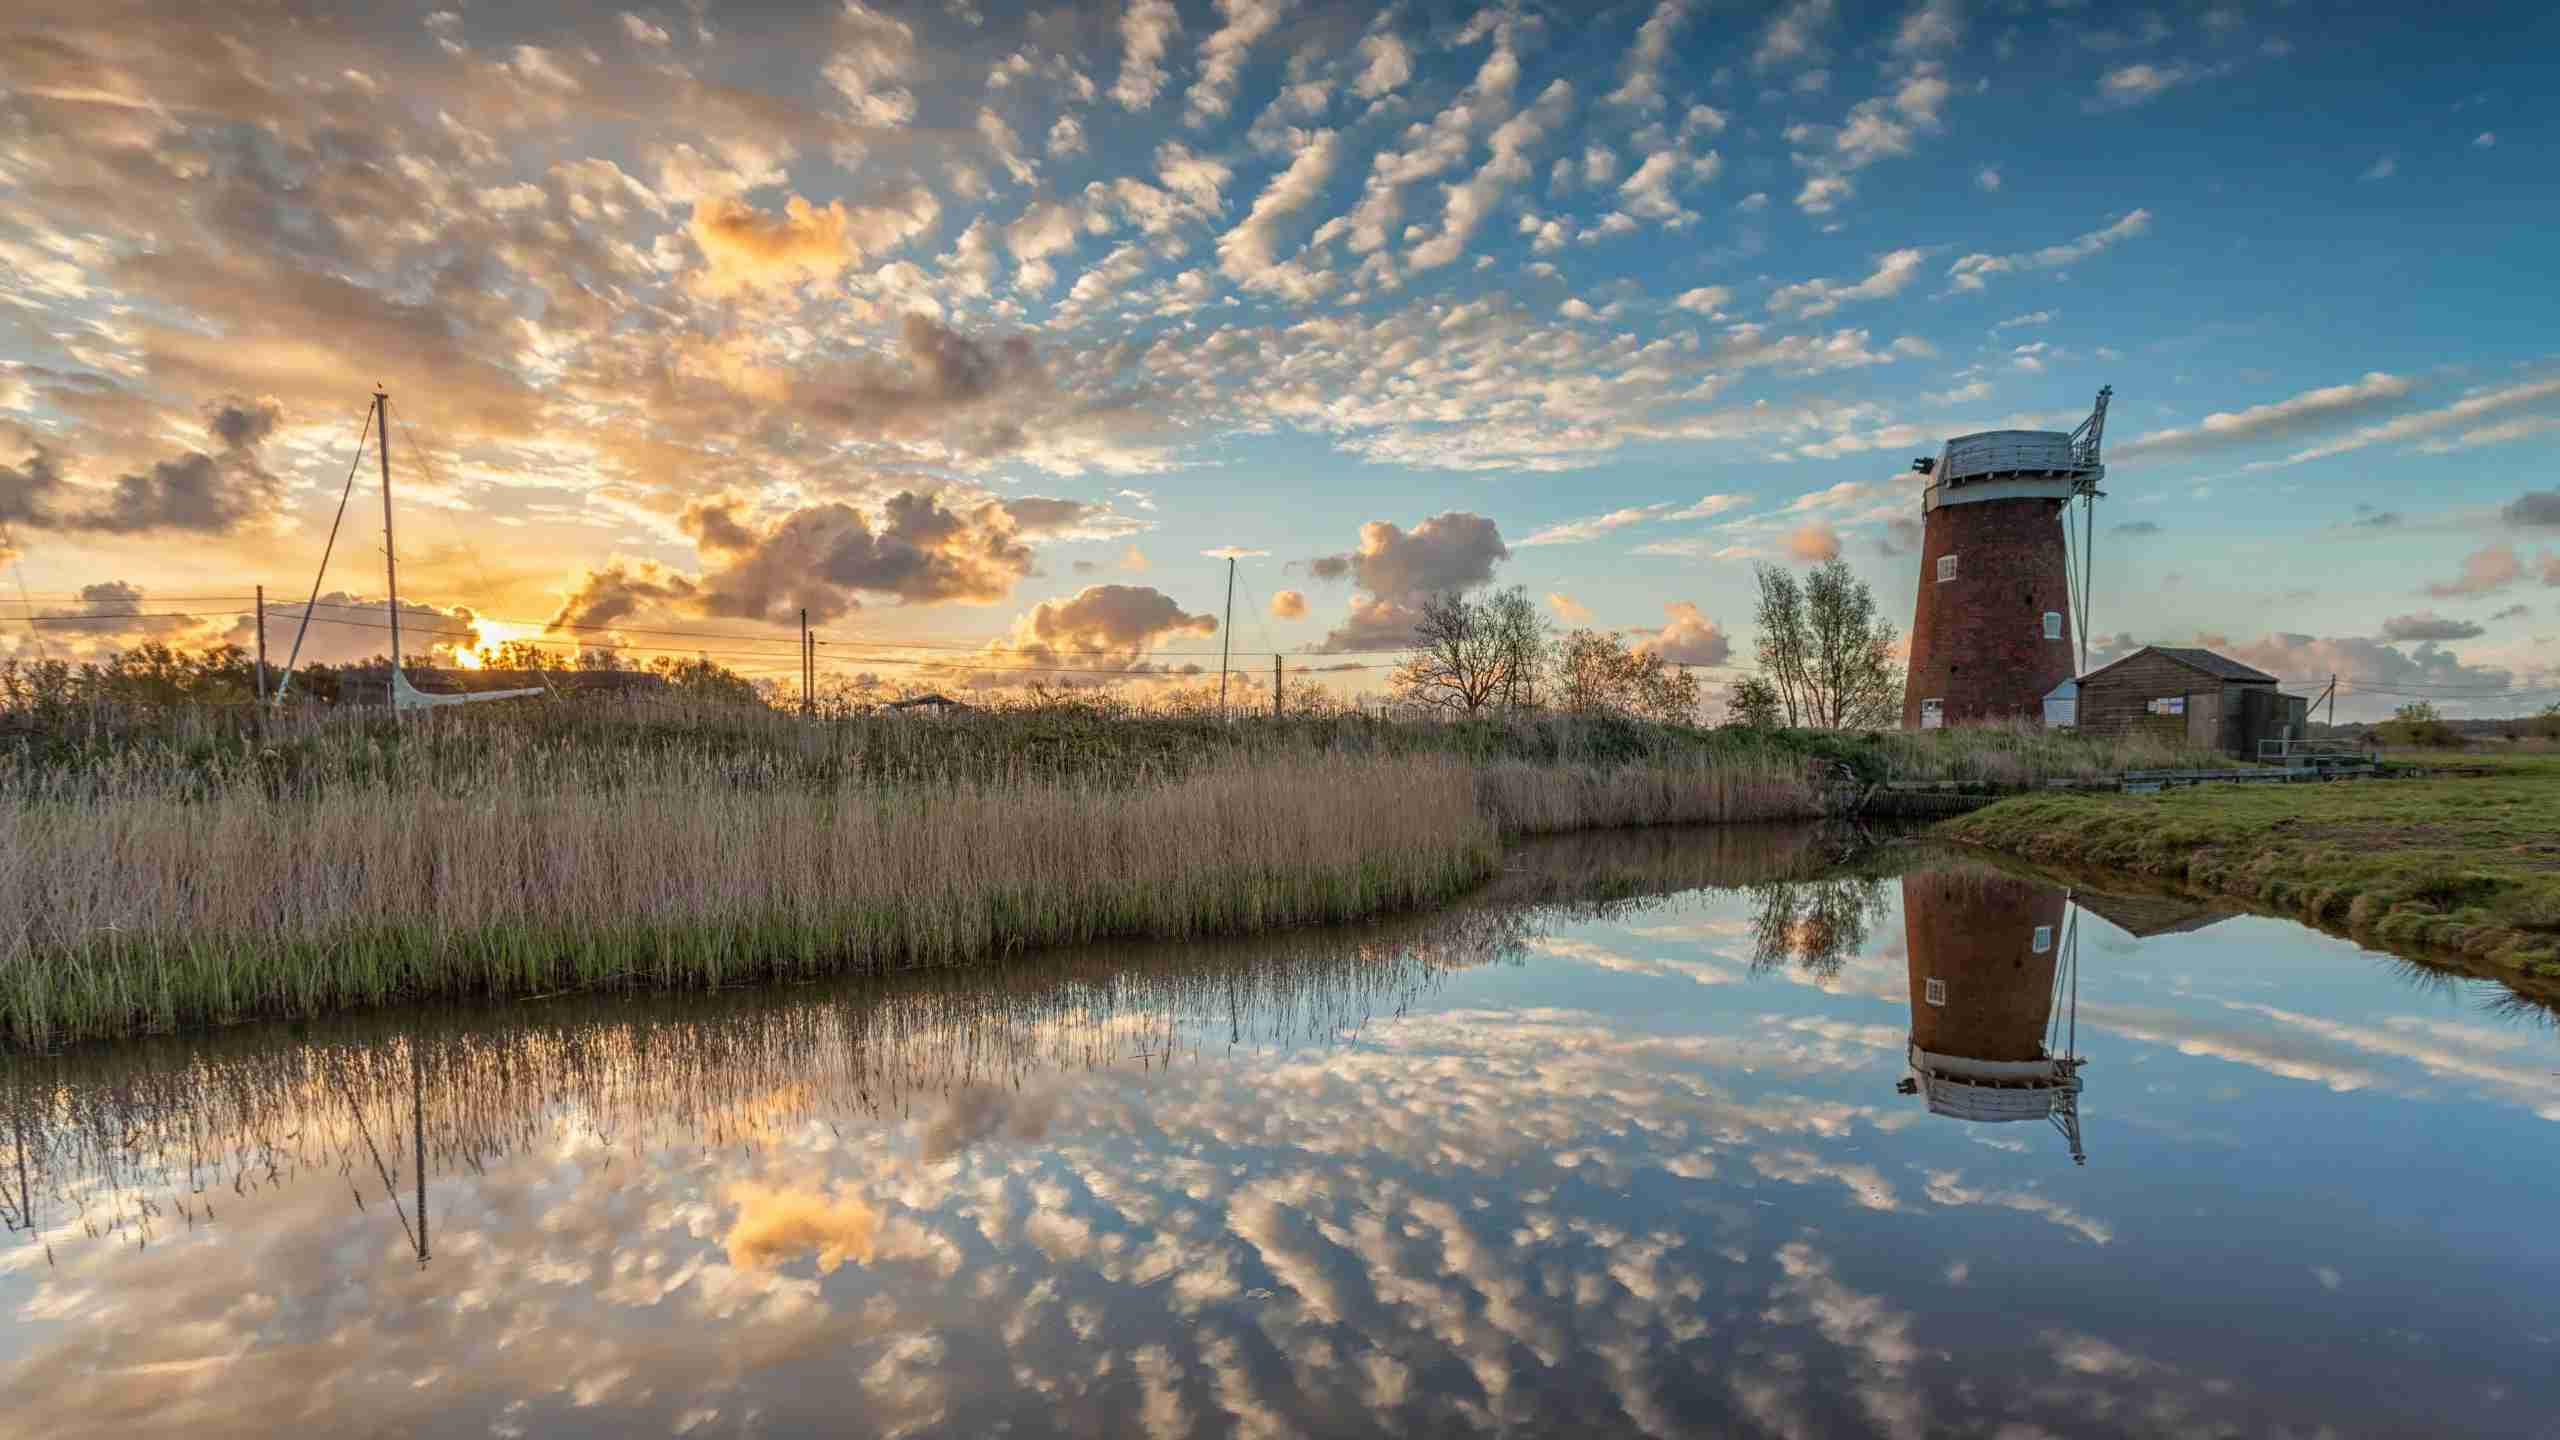 Traditional windmill on the Norfolk Broads. (Photo by George W Johnson/Getty Images)